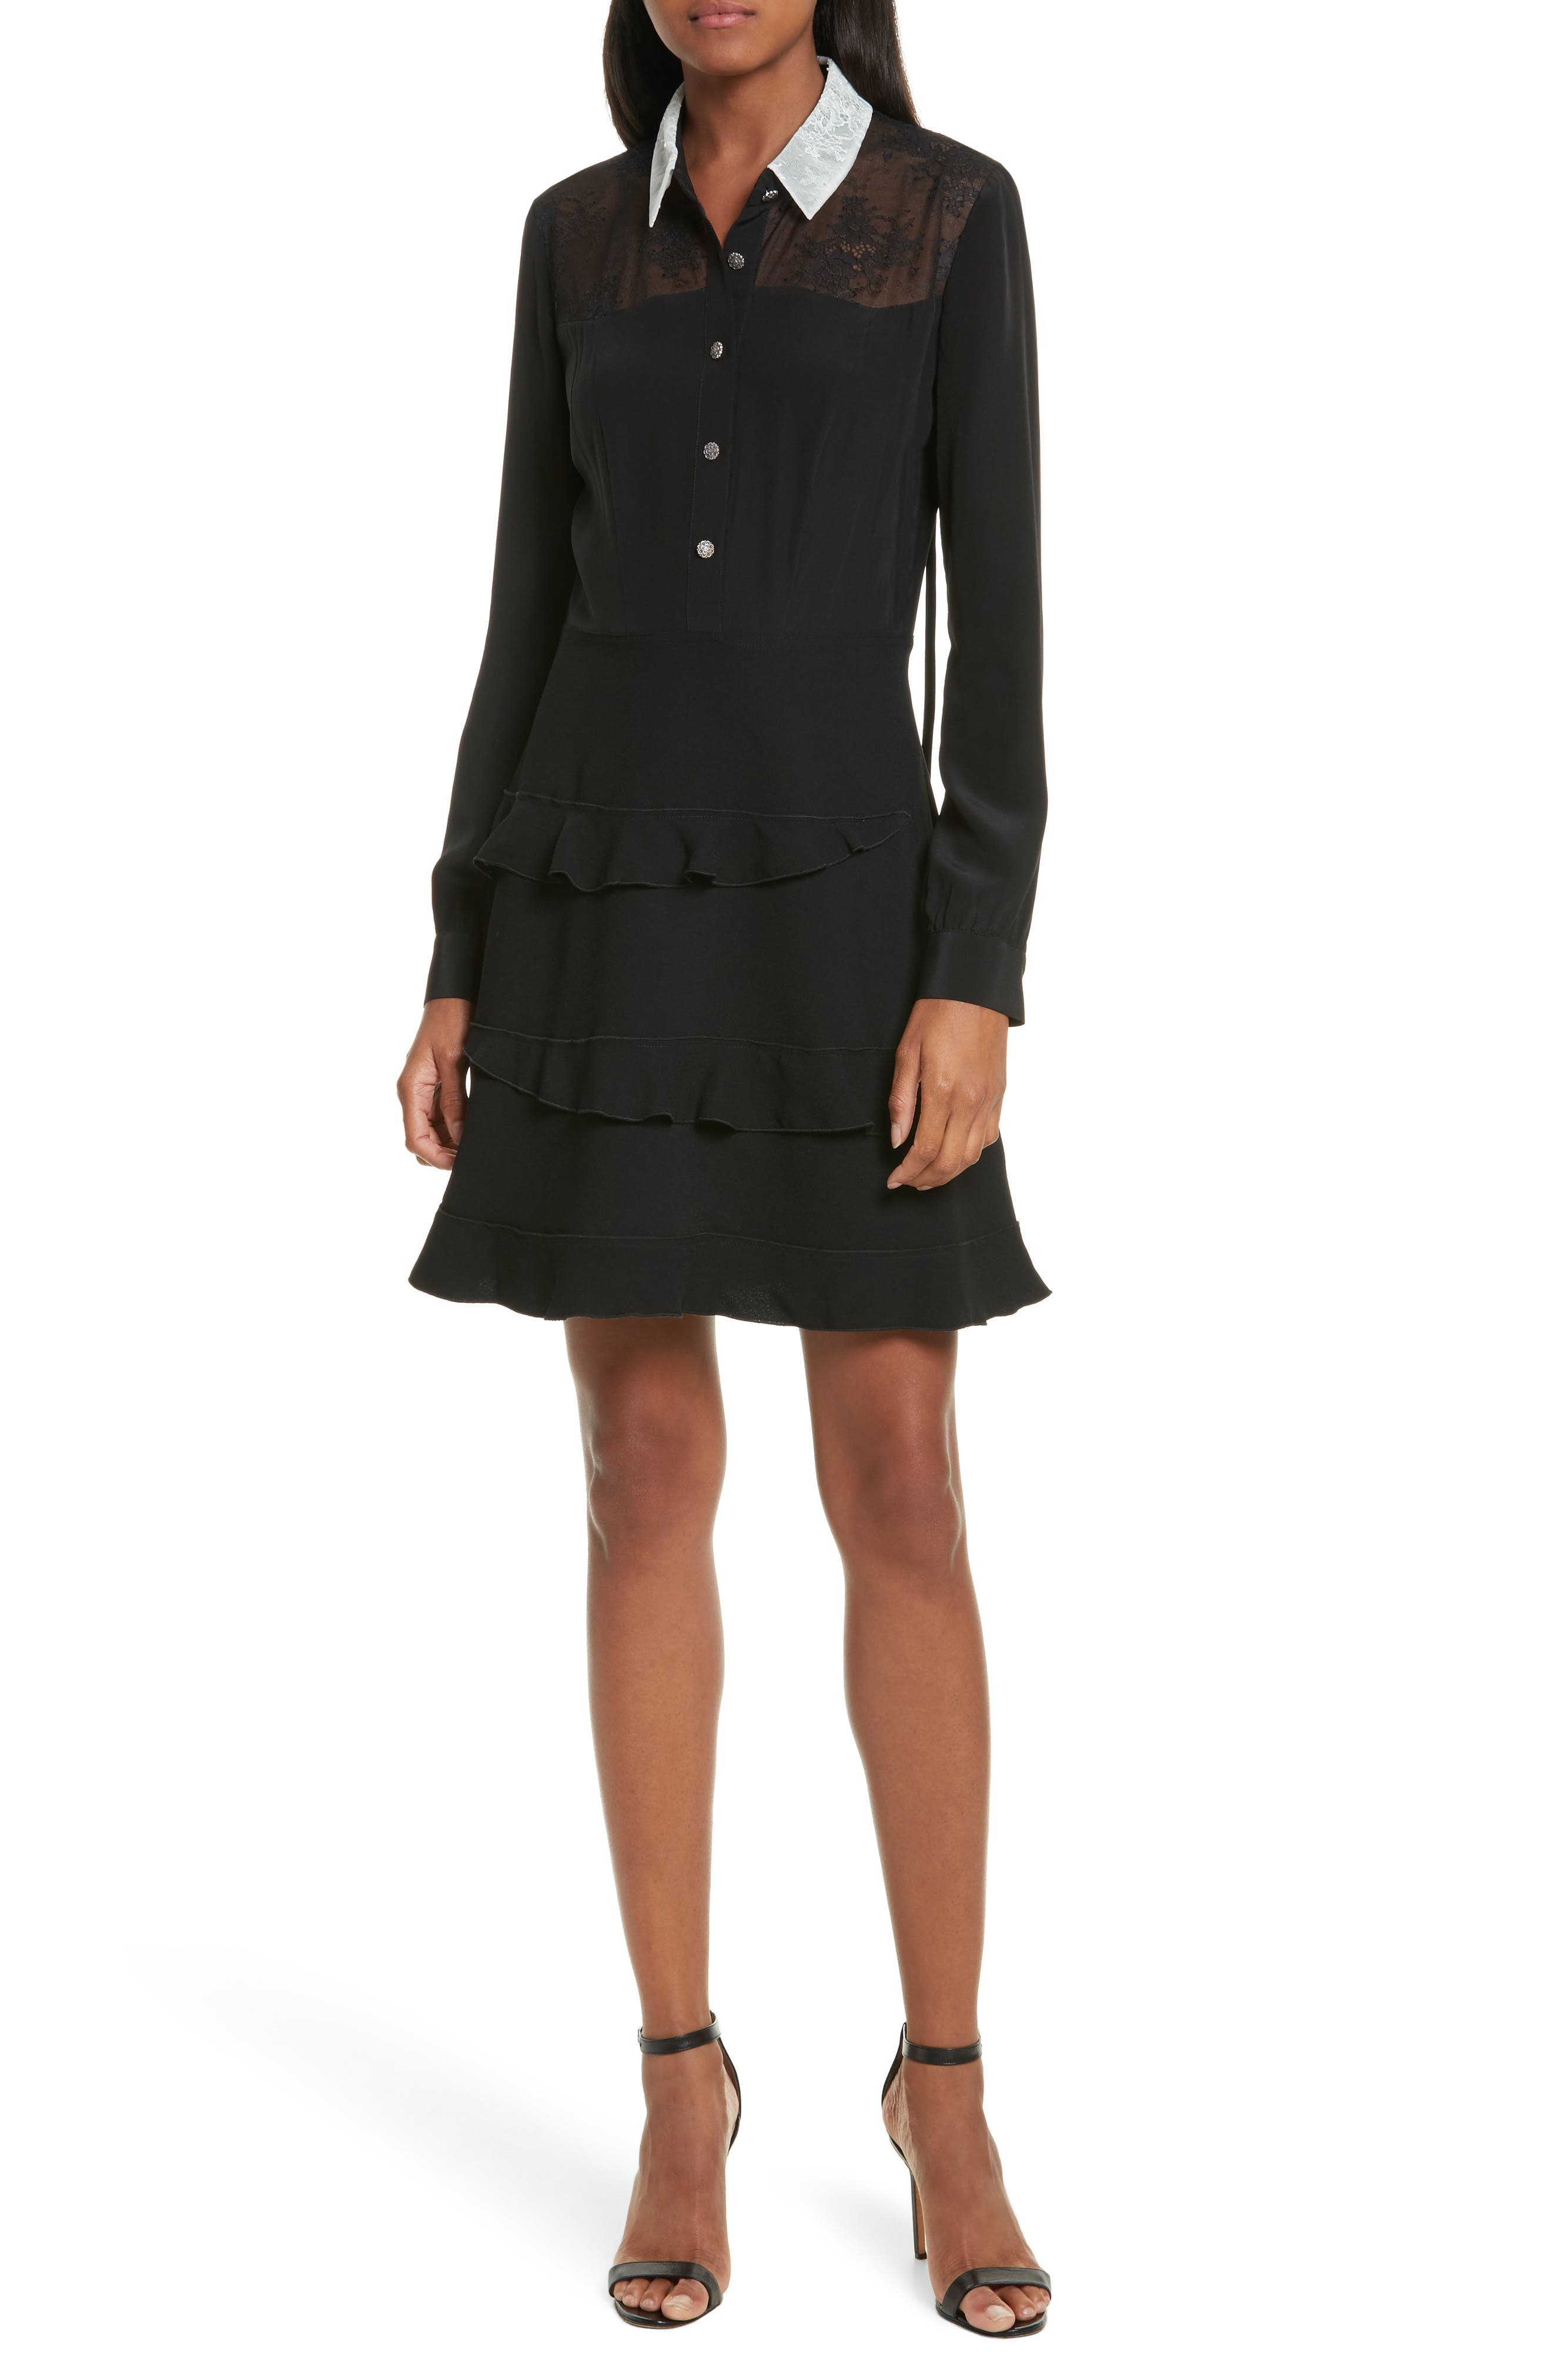 The Kooples Trompe l'Oeil Shirtdress